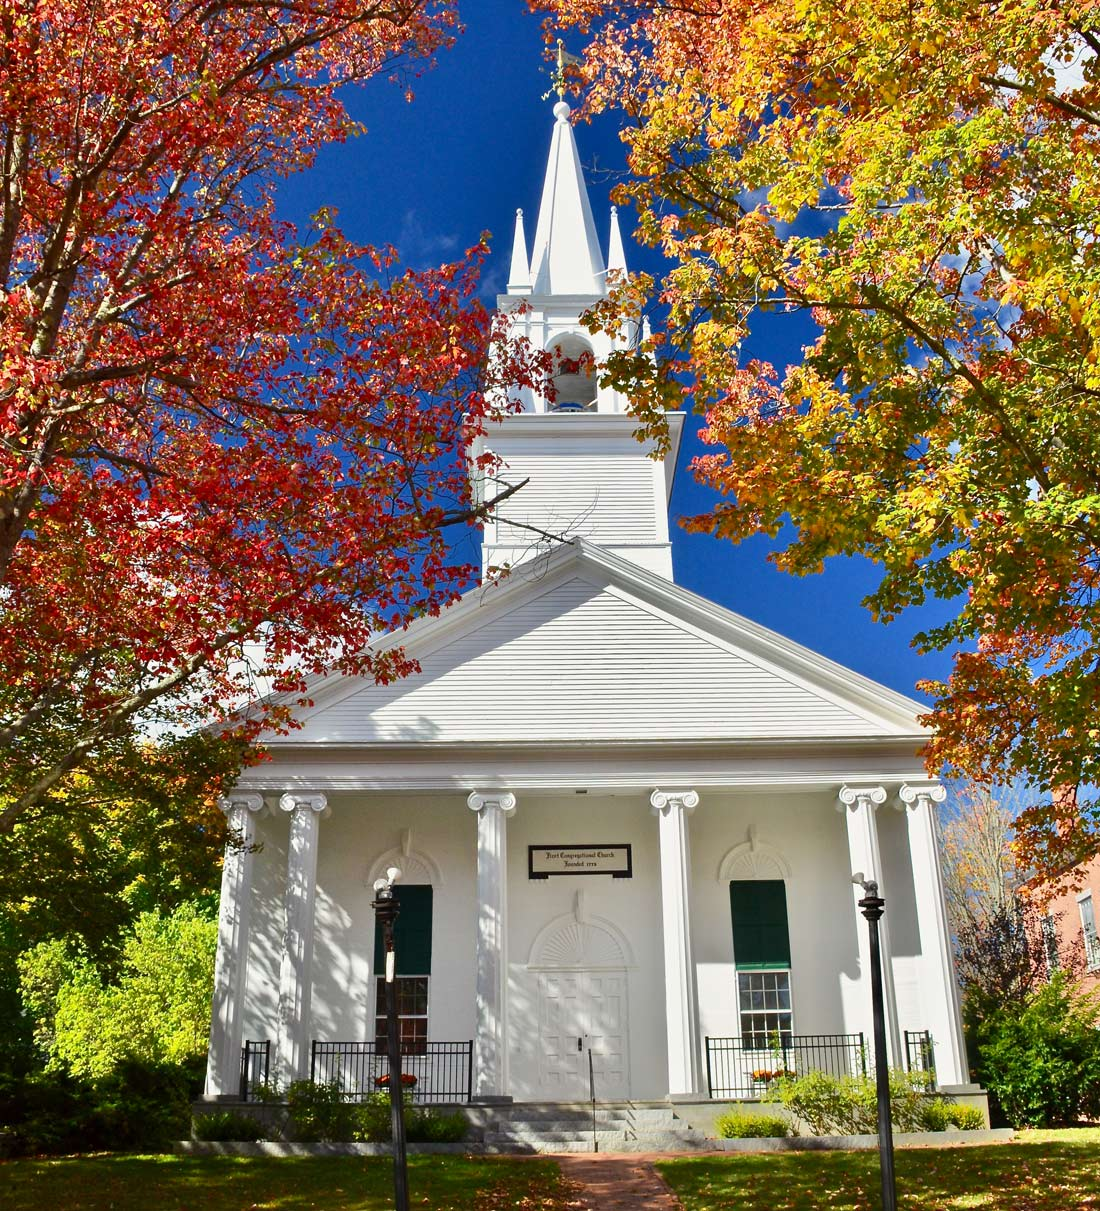 Portland's historic First Congregational Church.